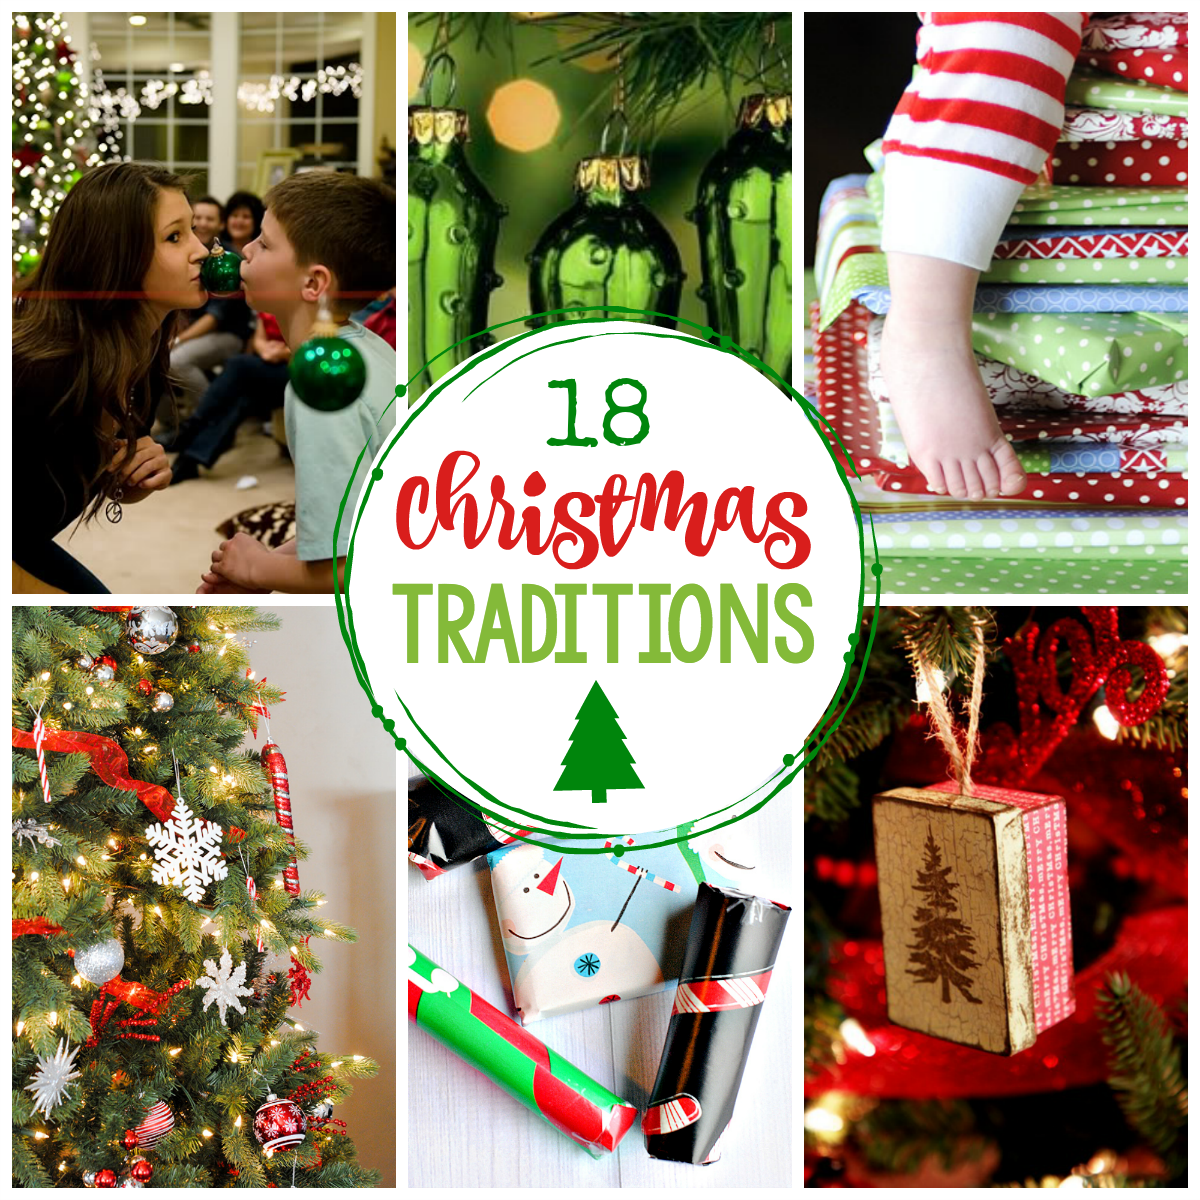 Family Christmas.25 Fun Christmas Traditions To Start This Year Fun Squared